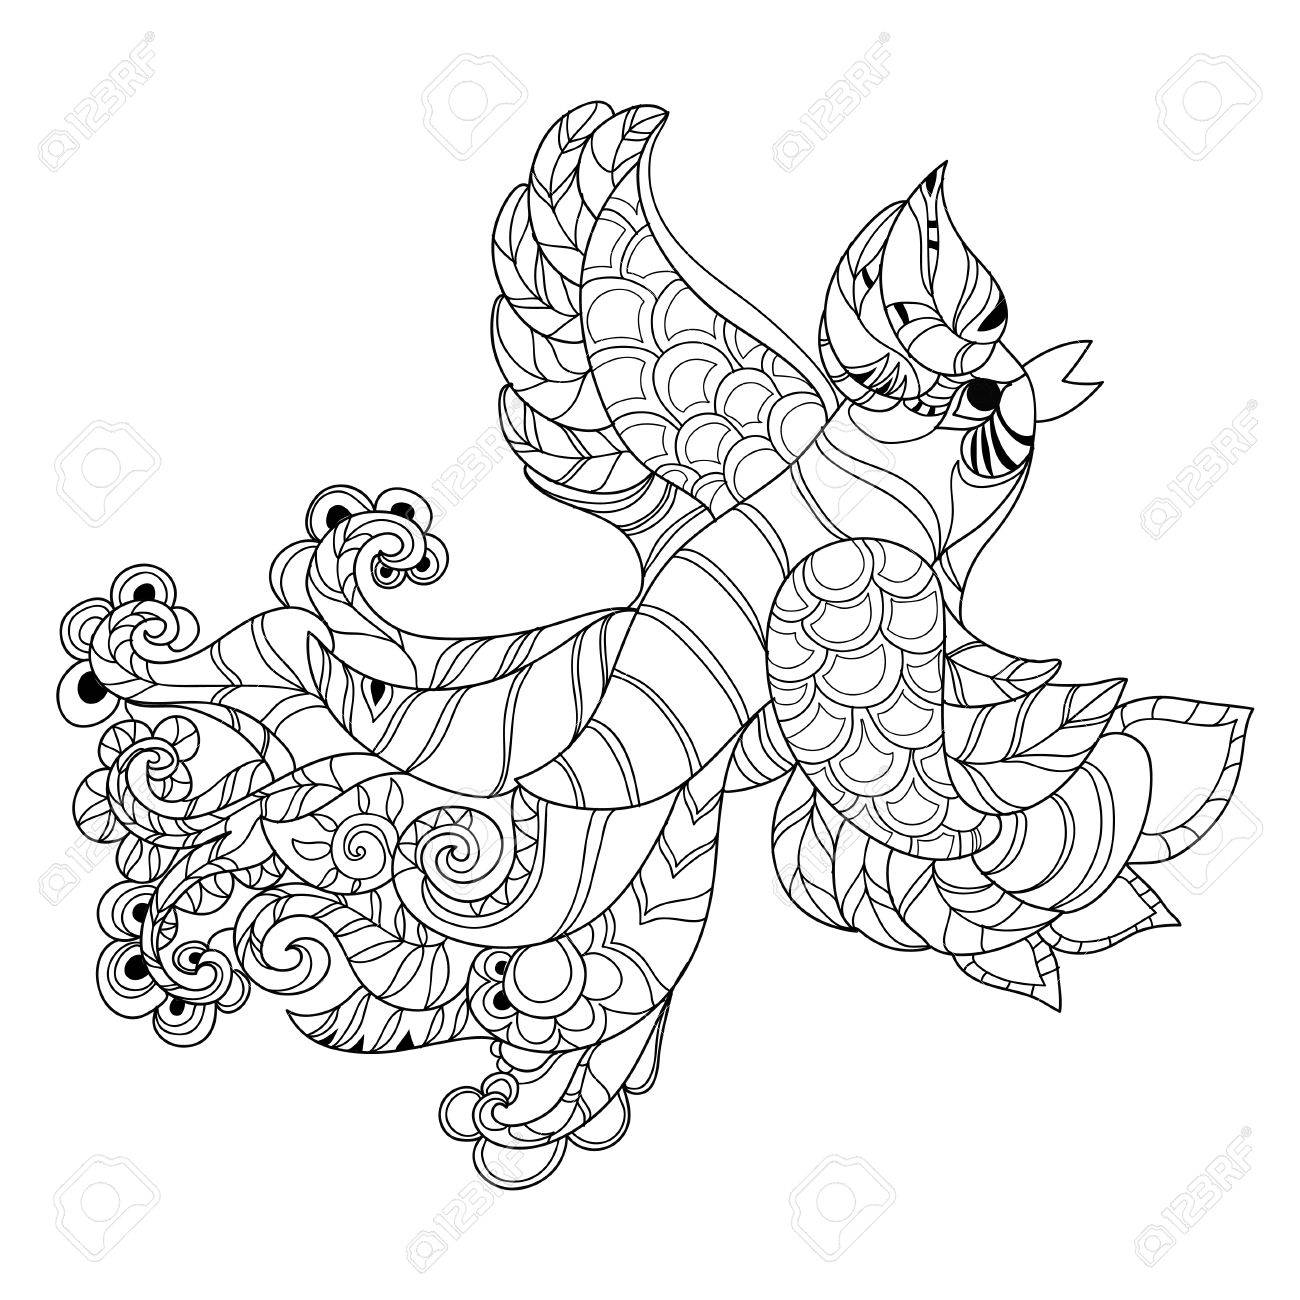 1300x1300 Zentangle Stylized Peacock Hand Drawn Vector Illustration. Sketch